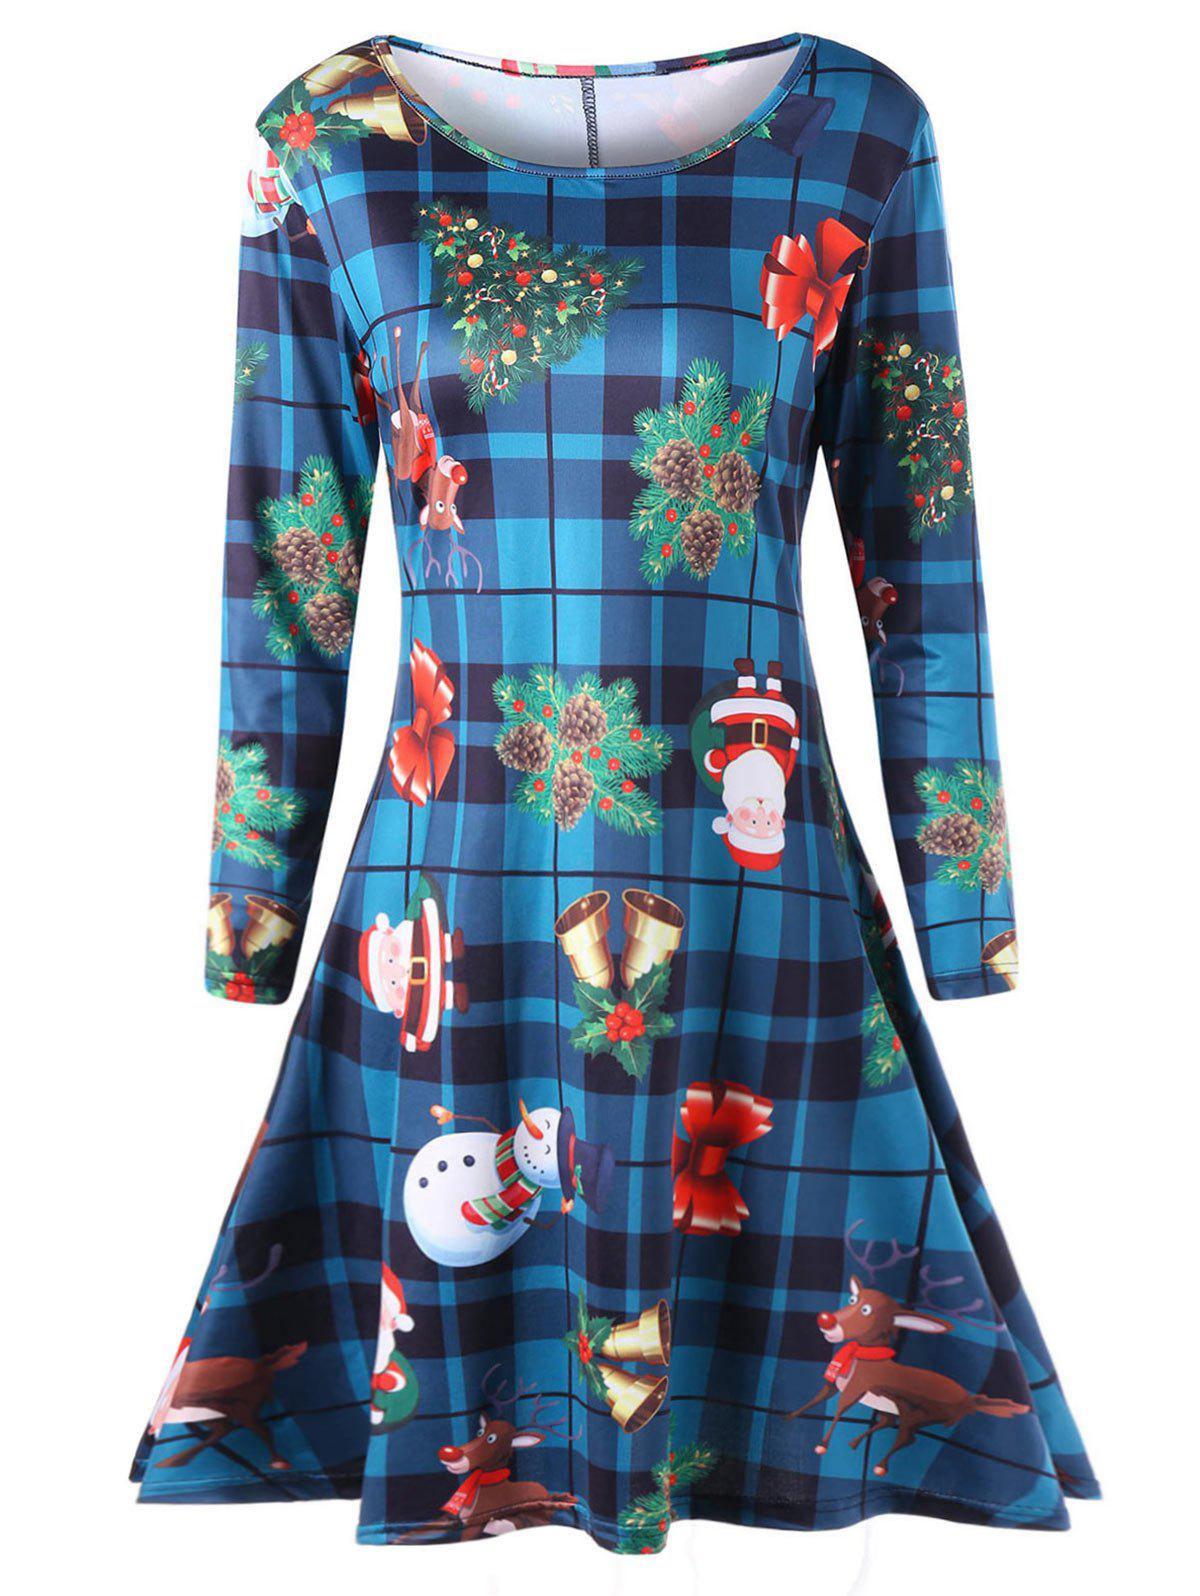 Plus Size Long Sleeve Plaid Christmas DressWOMEN<br><br>Size: 2XL; Color: COLORMIX; Style: Casual; Material: Polyester,Spandex; Silhouette: A-Line; Dresses Length: Mid-Calf; Neckline: Scoop Neck; Sleeve Length: Long Sleeves; Pattern Type: Christmas Tree; With Belt: No; Season: Fall,Spring,Winter; Weight: 0.4500kg; Package Contents: 1 x Dress;